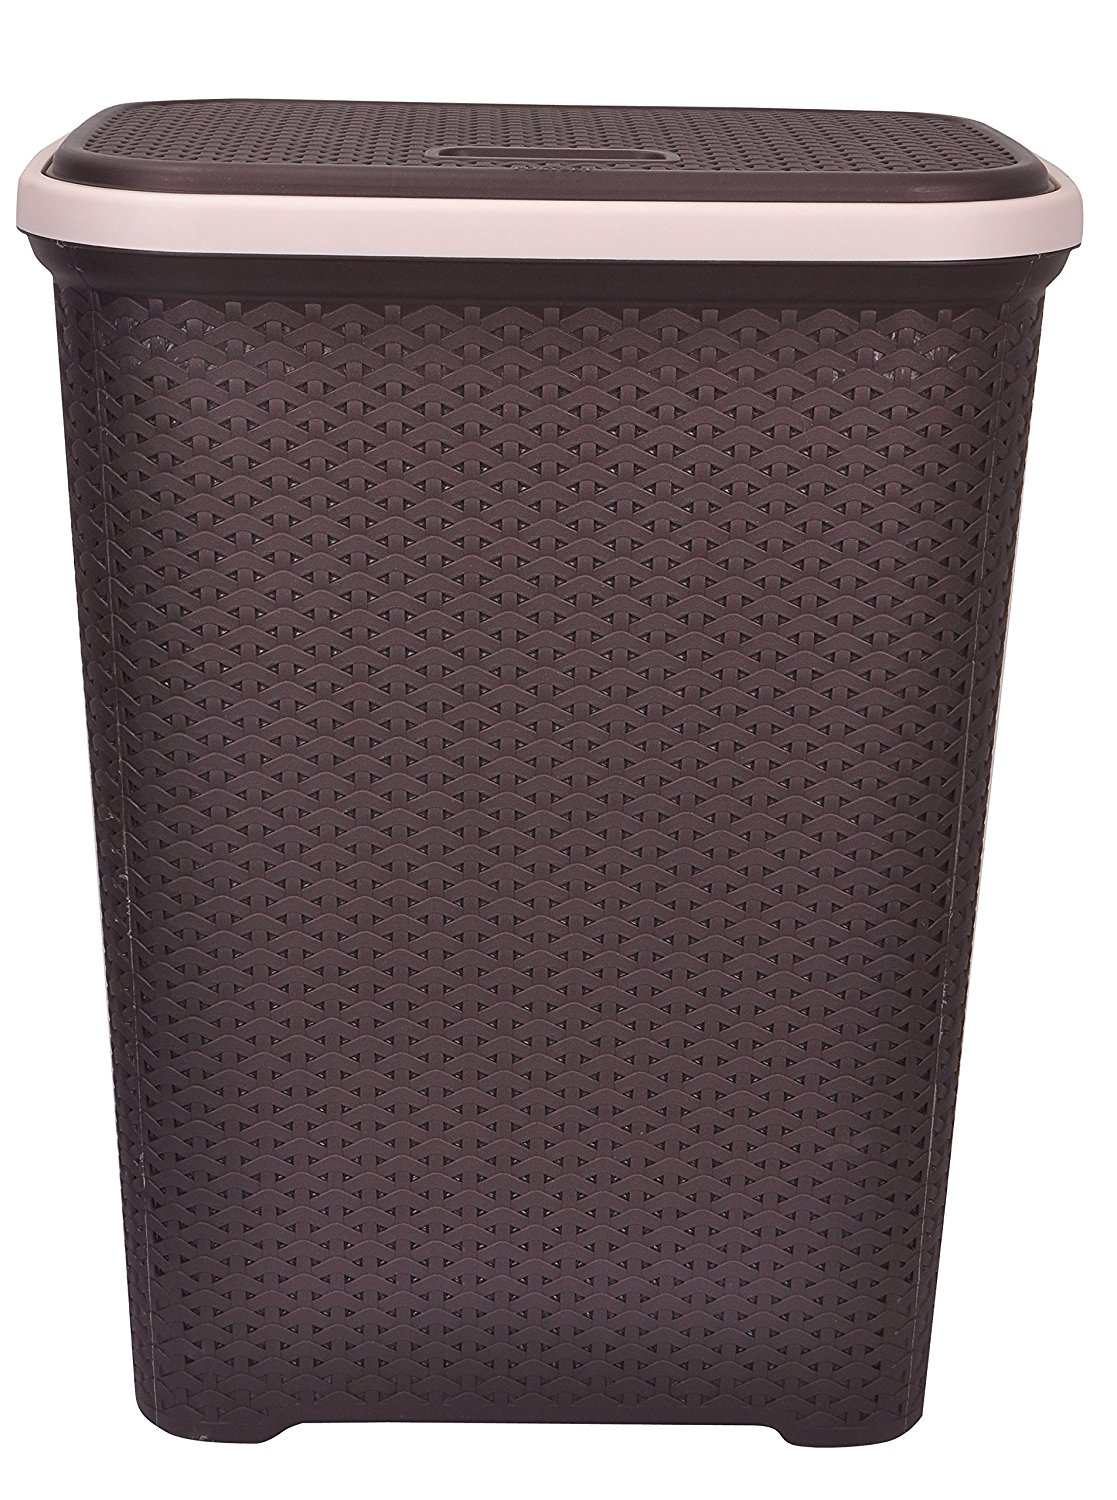 Get Quotations Polyset Laundry Basket With Lid For Clothes Size